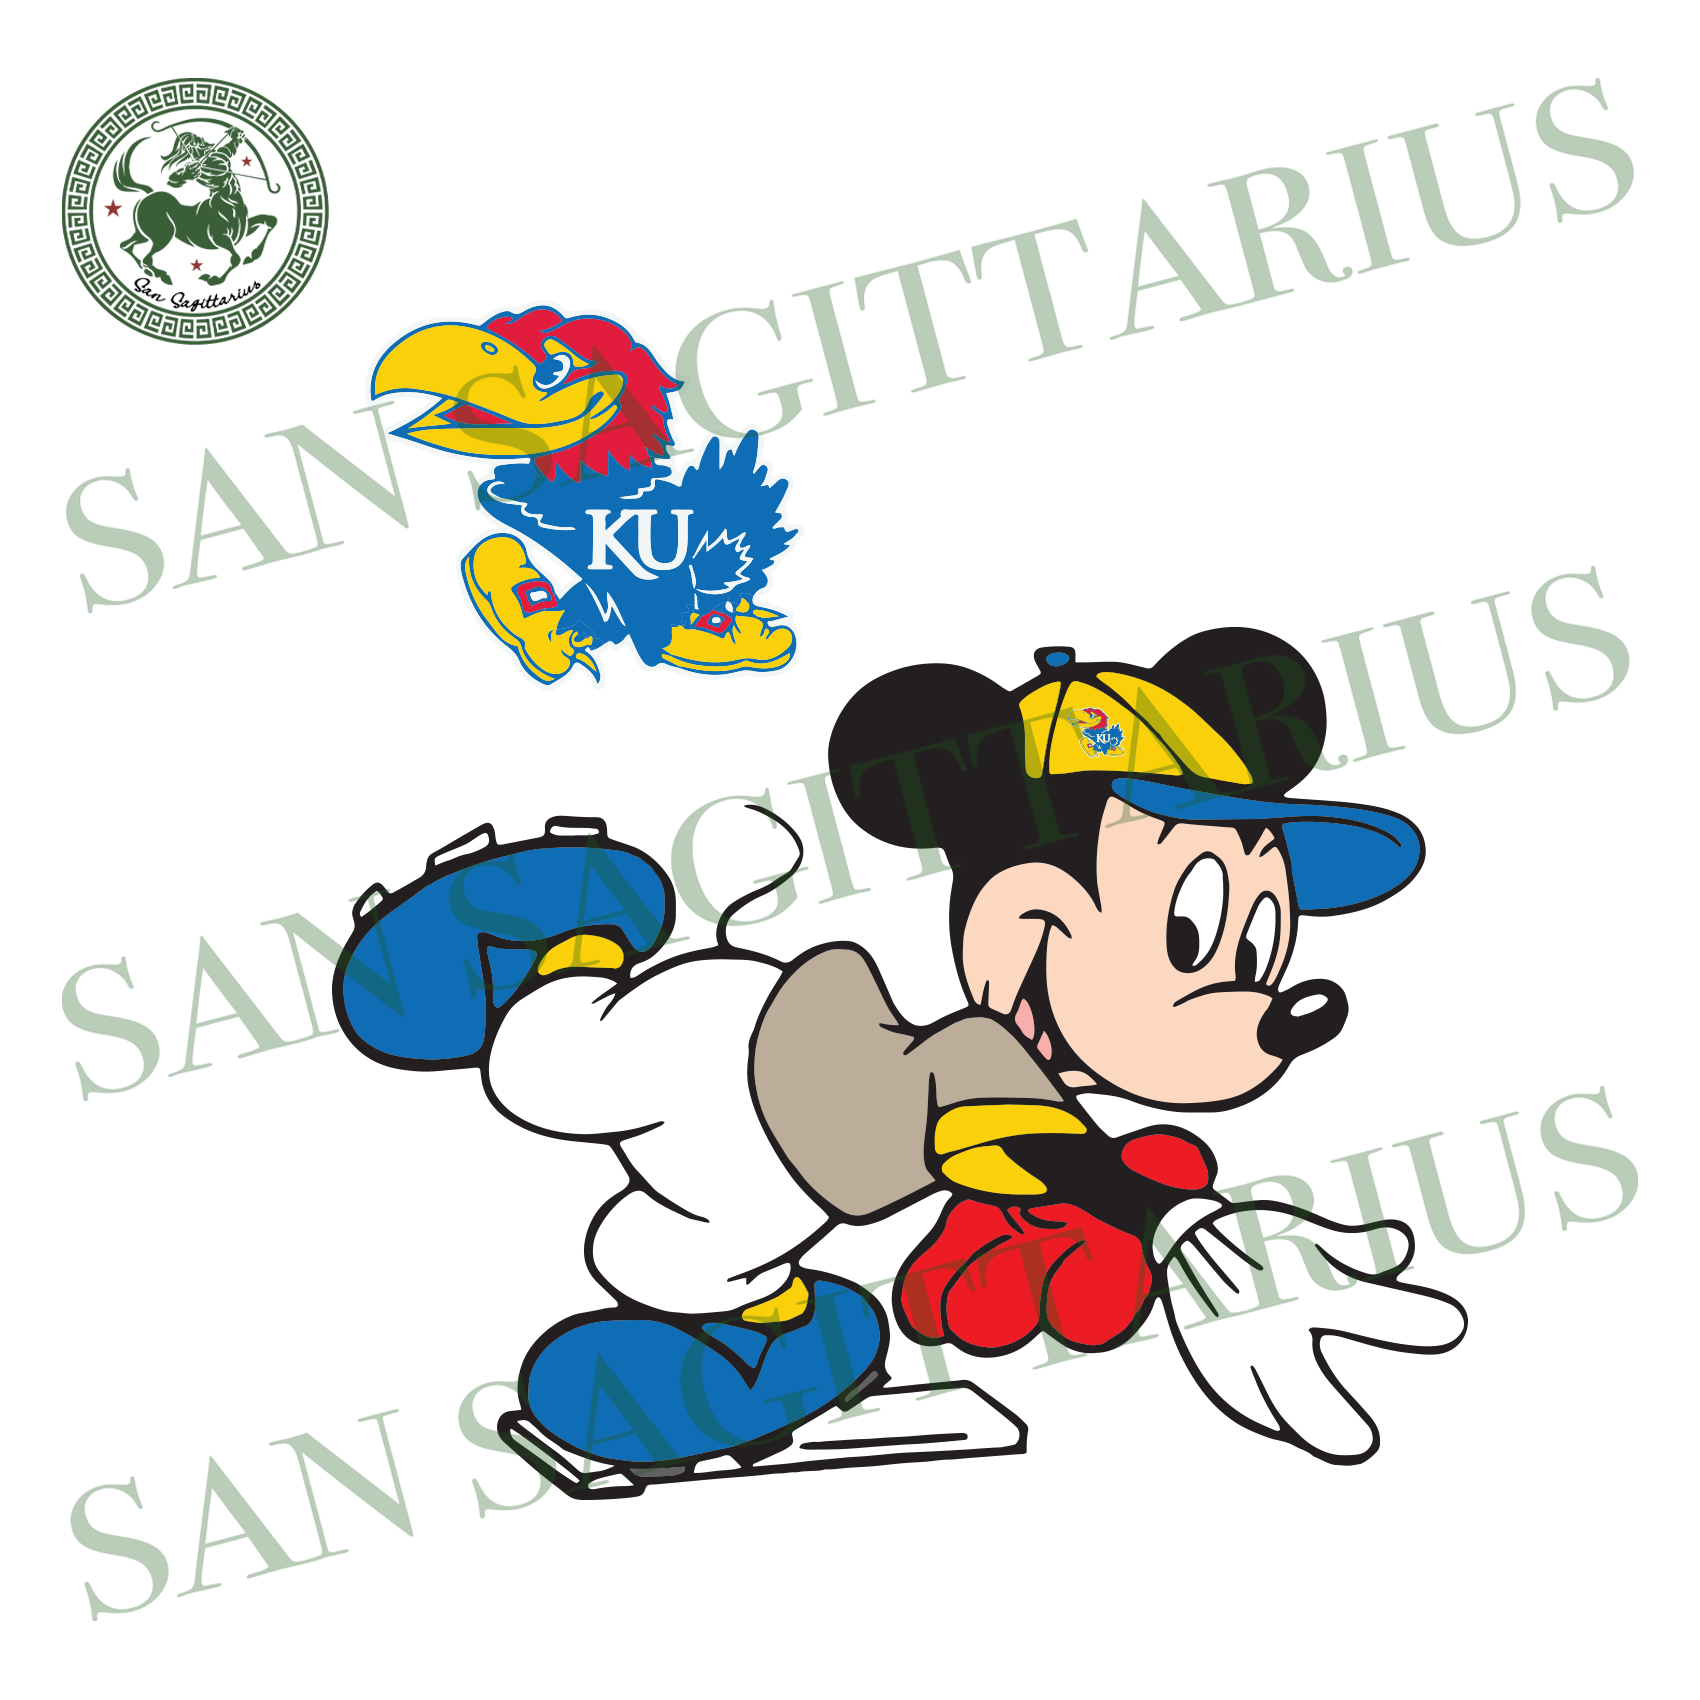 Kansas Jayhawks And Mickey, Sport Svg, Kansas Jayhawks Svg, NCAA Sport Svg, NCAA Svg, Mickey Svg, Football Svg, Kansas Jayhawks Logo, Kansas Jayhawks Shirt, Kansas Jayhawks Lover, Mickey Love